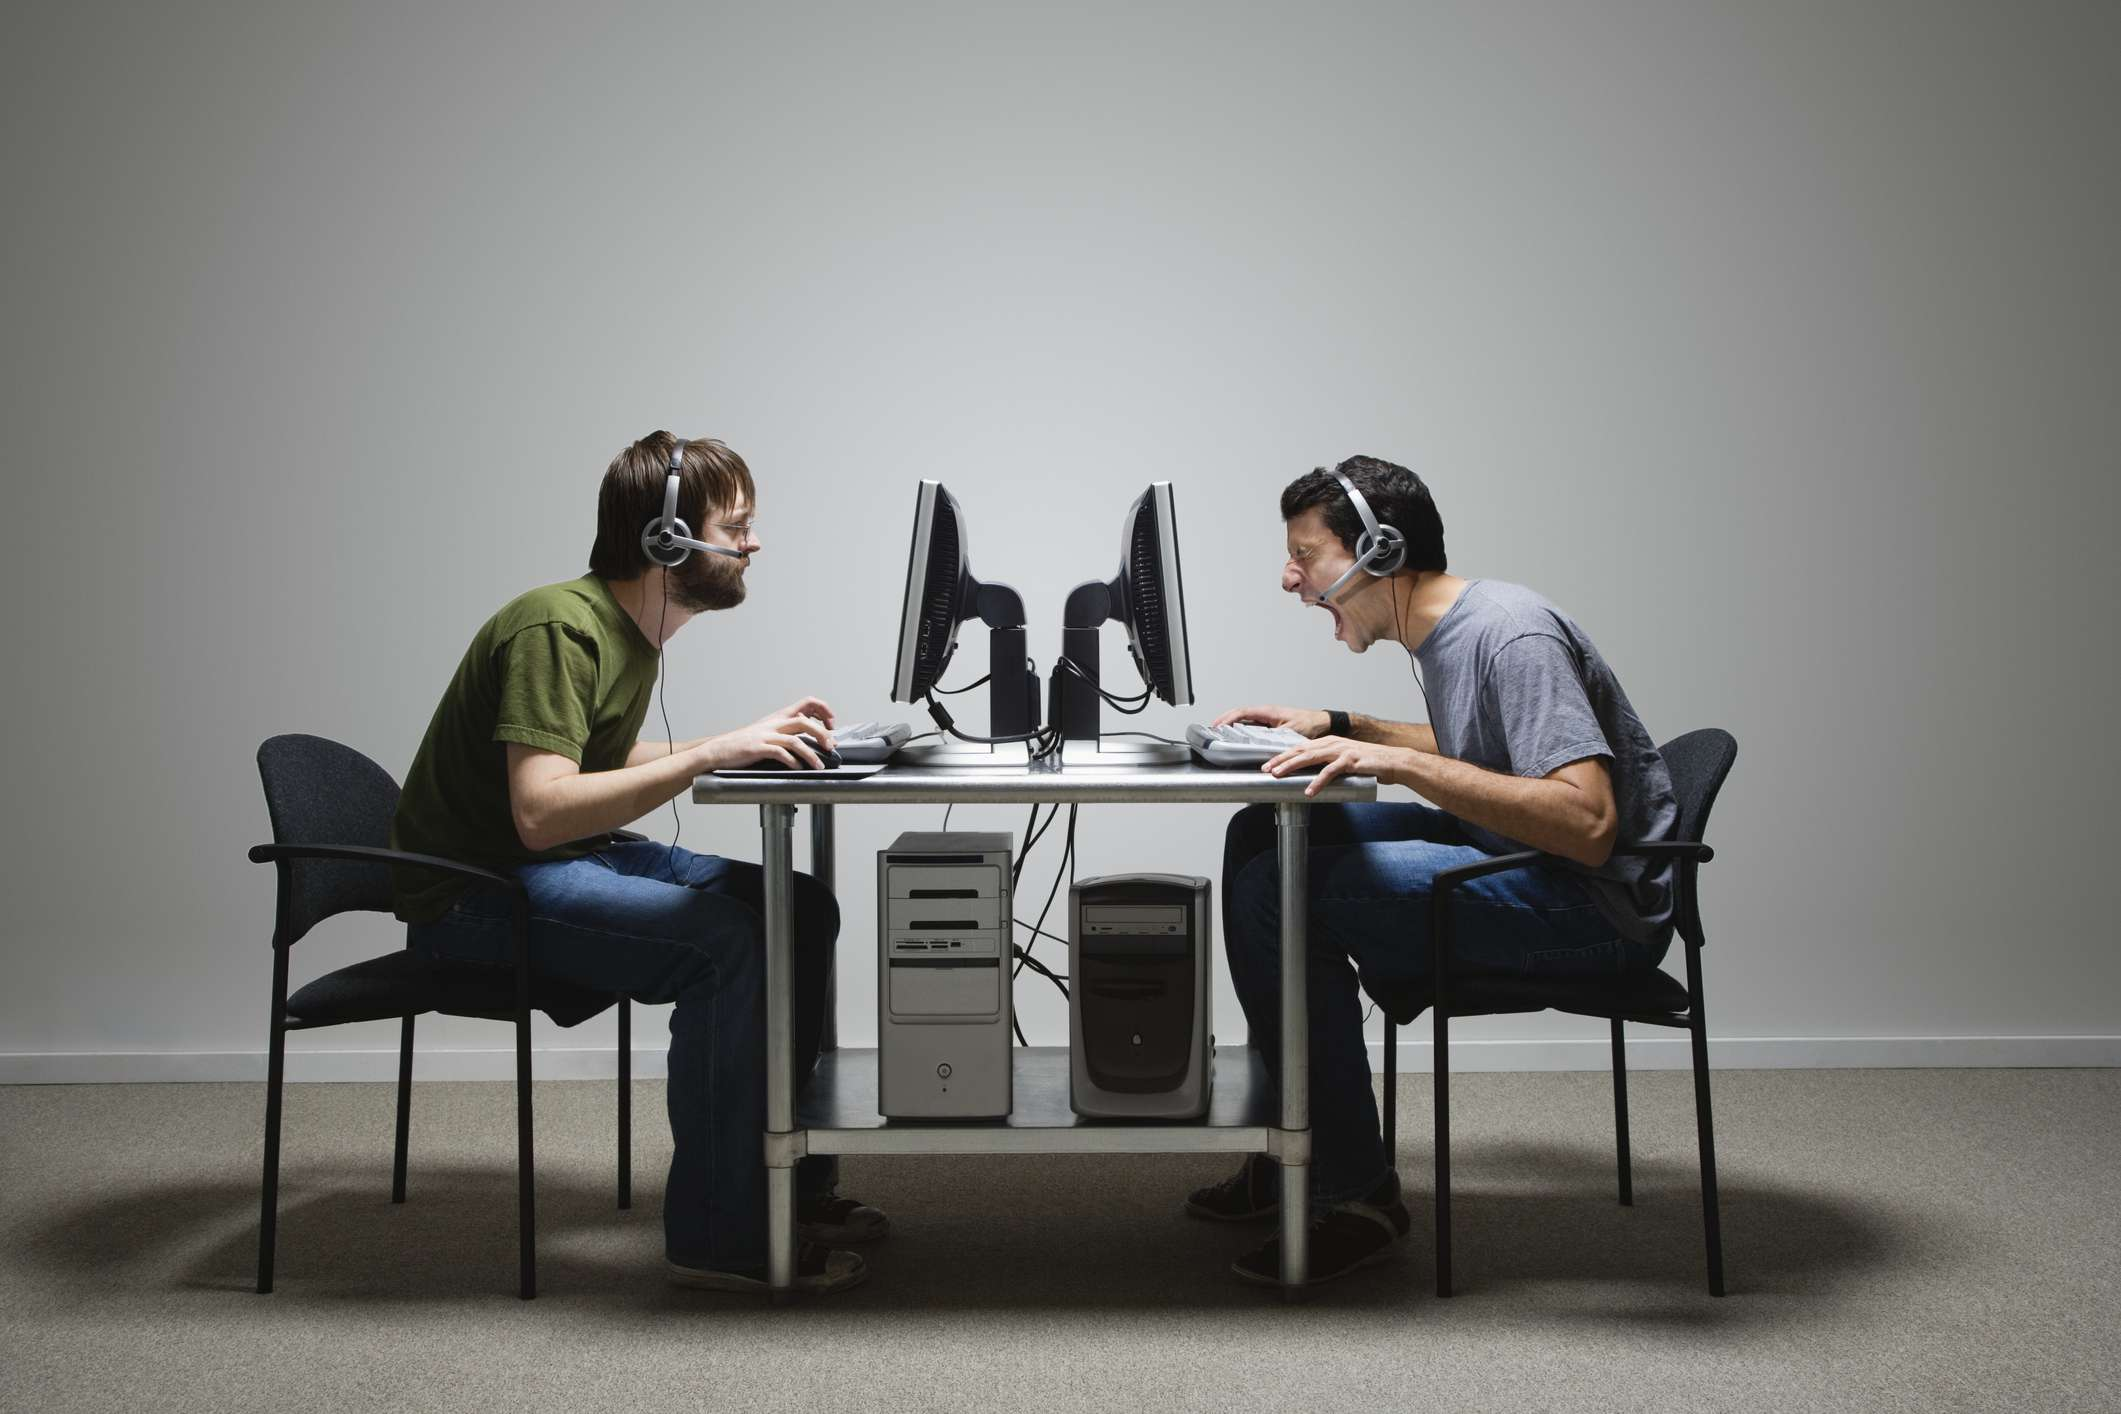 A profile of two men using computers sitting opposite to each other at a desk